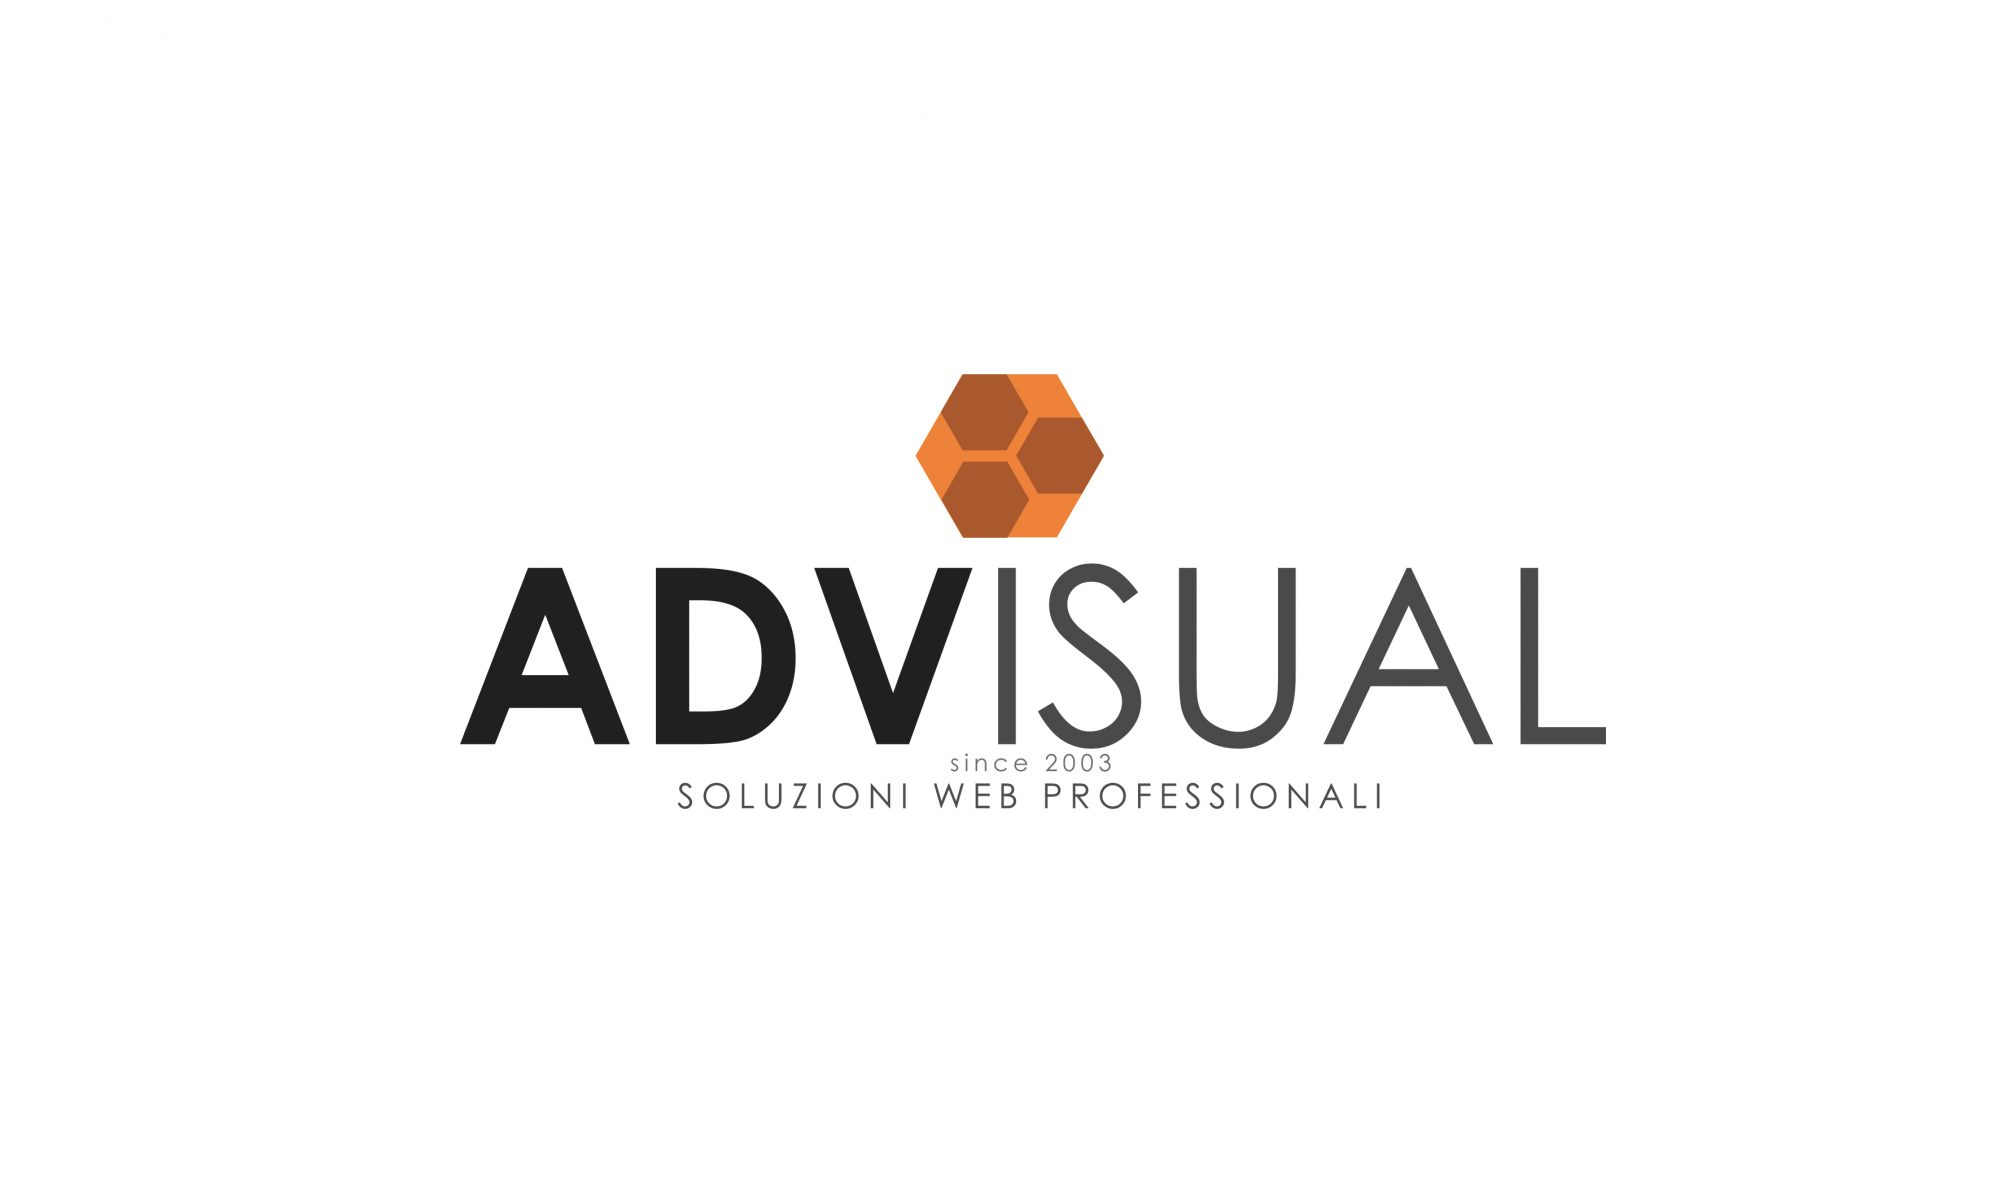 Advisual siti web Professionali